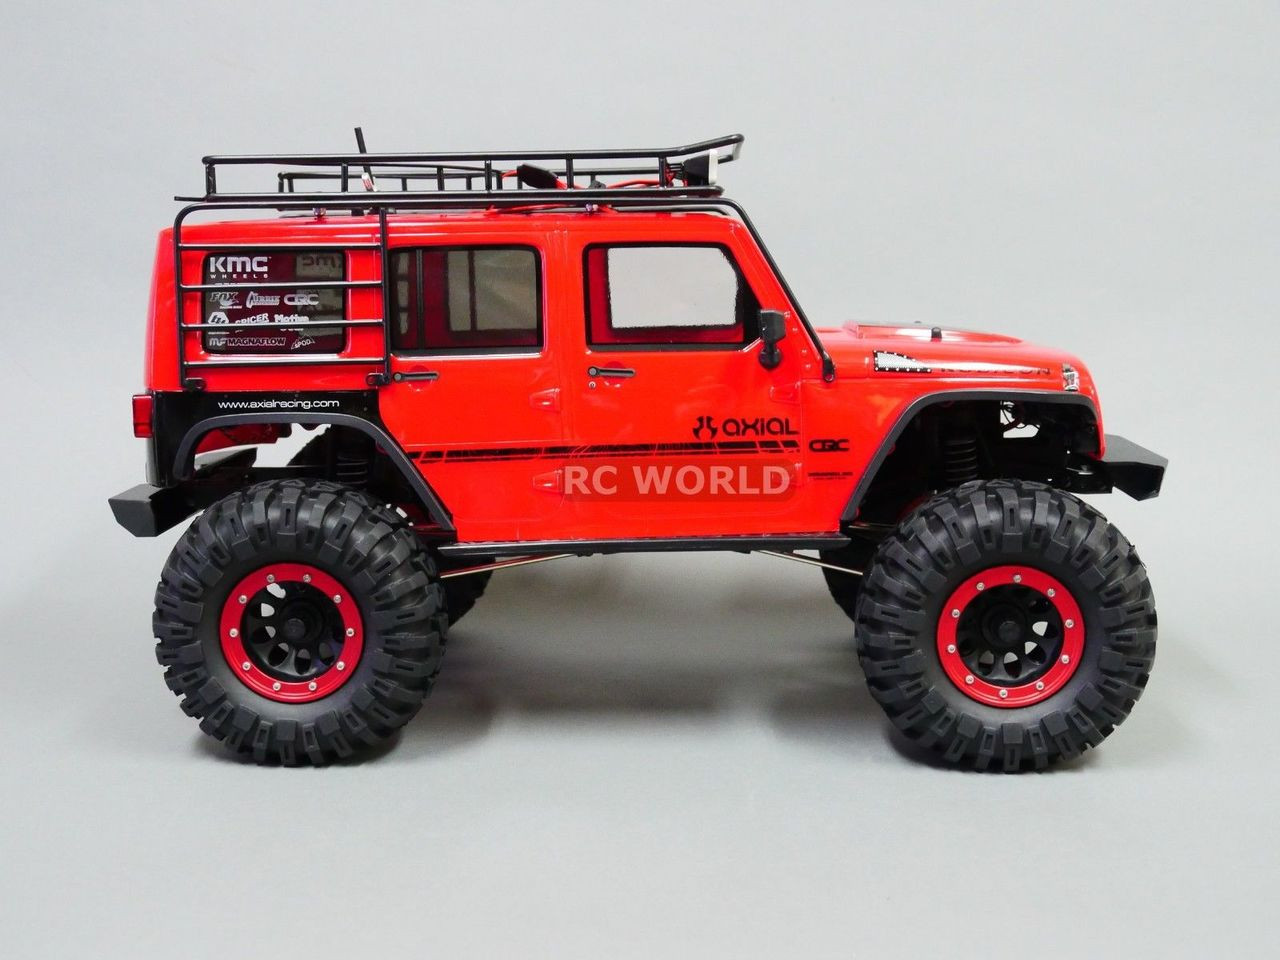 Jeep Wrangler Rims And Tire Packages >> Axial Jeep Wrangler 2 2 Beadlock Crawler Wheels Tires 130mm Red